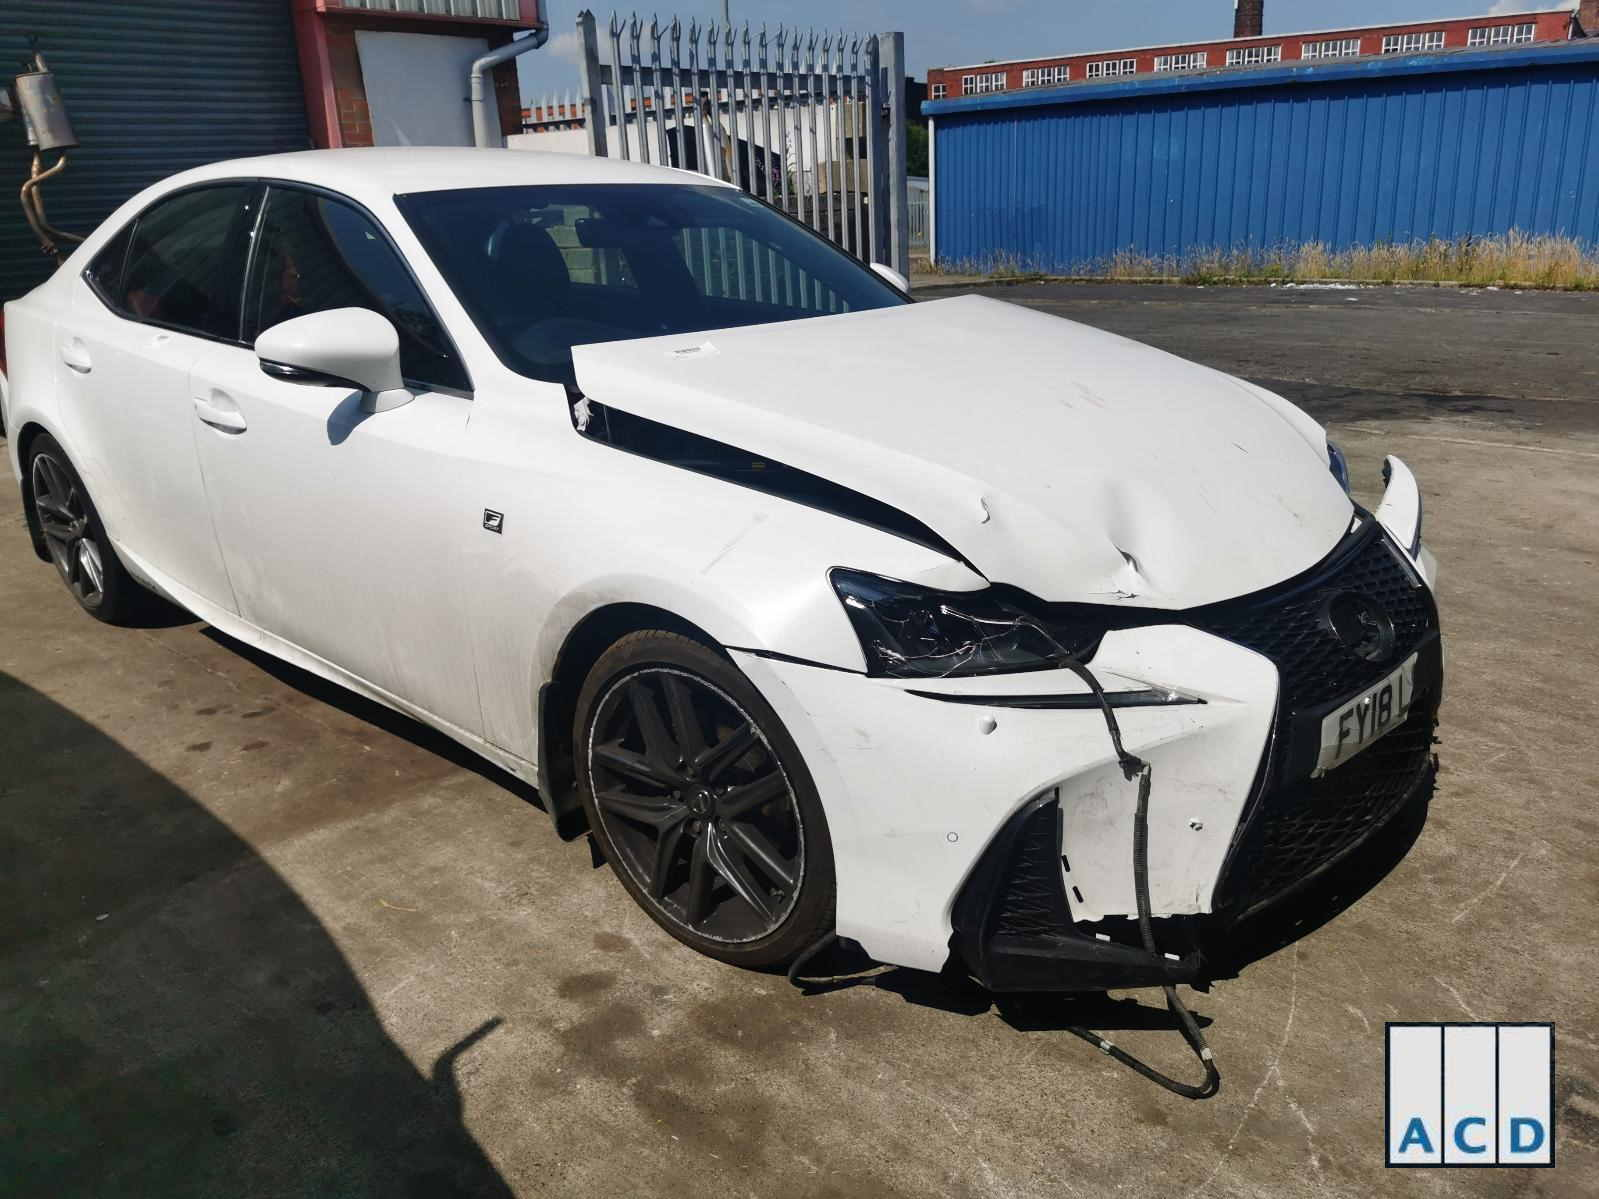 2018 Lexus IS300H 2.5 Petrol Automatic F Sport Stock Number 3472